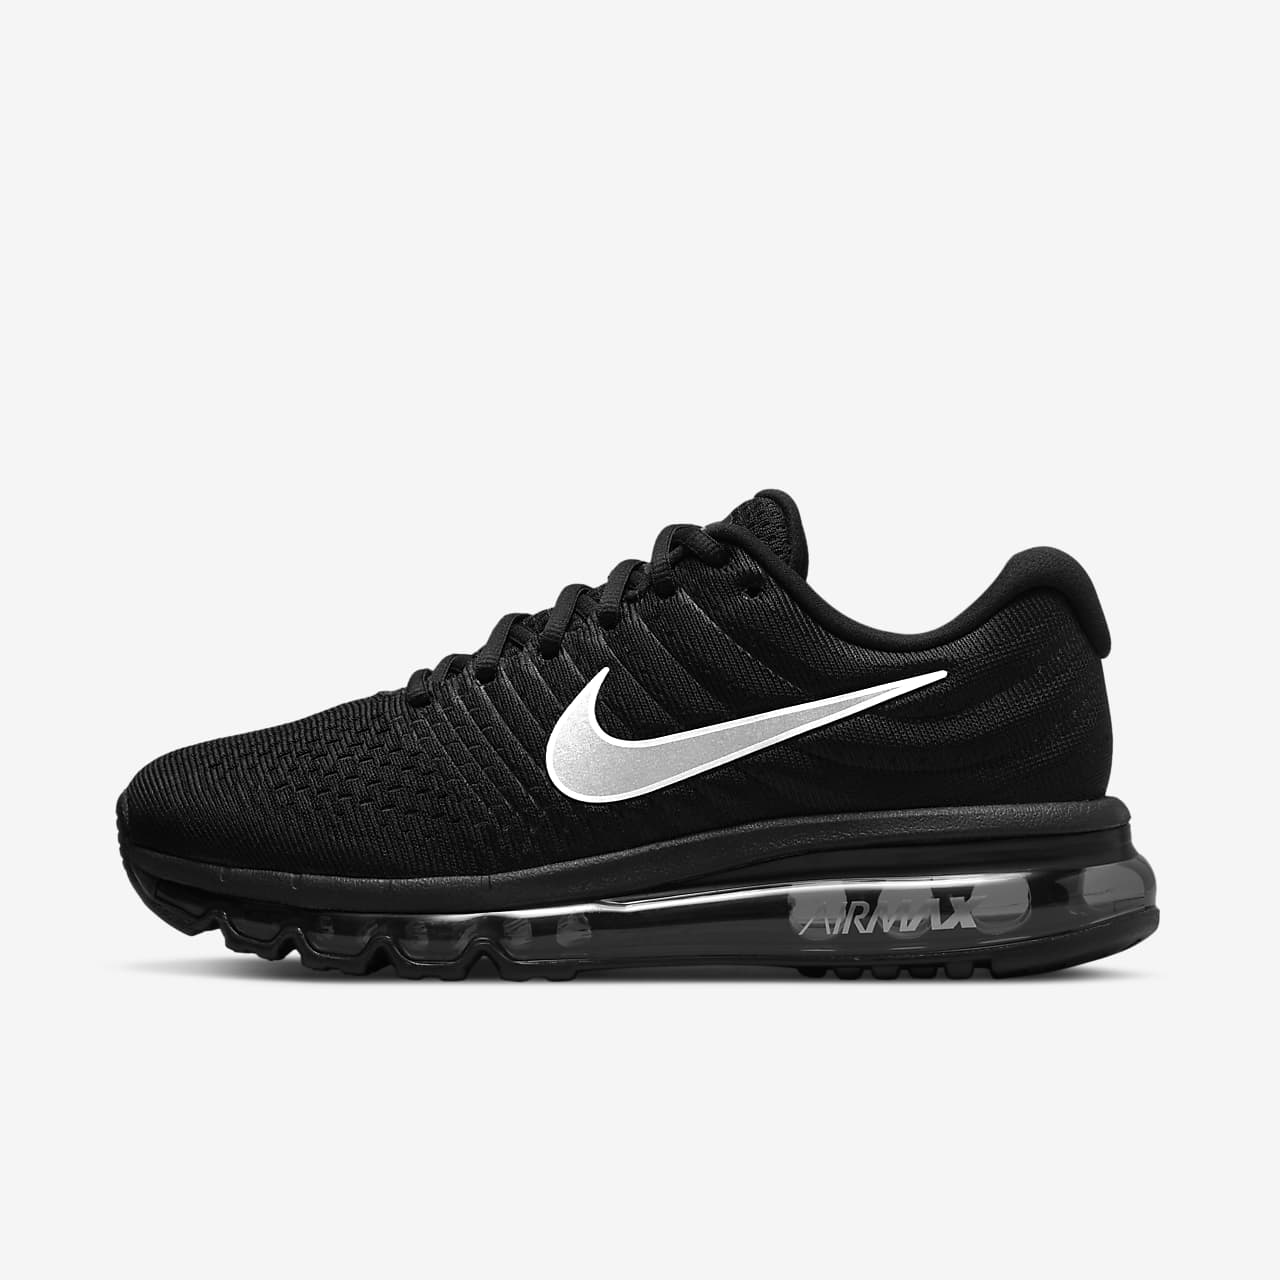 official photos 674d0 54f70 Nike Air Max 2017 Women's Shoe. Nike.com CA